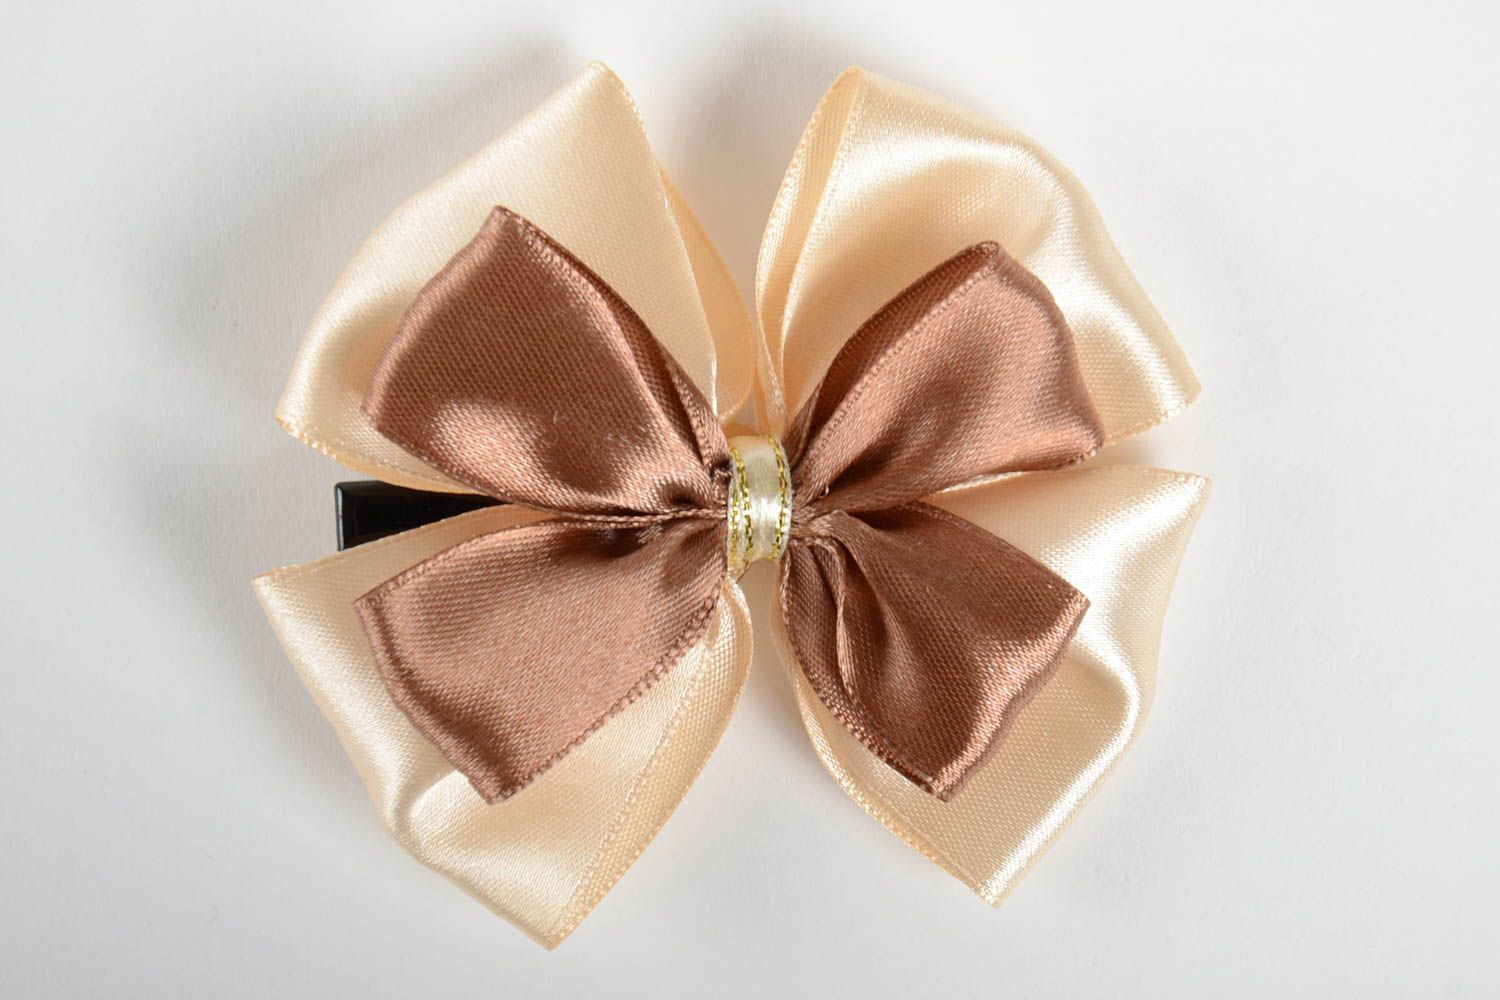 Handmade unusual hair clip accessory in shape of bow stylish satin hair clip photo 4